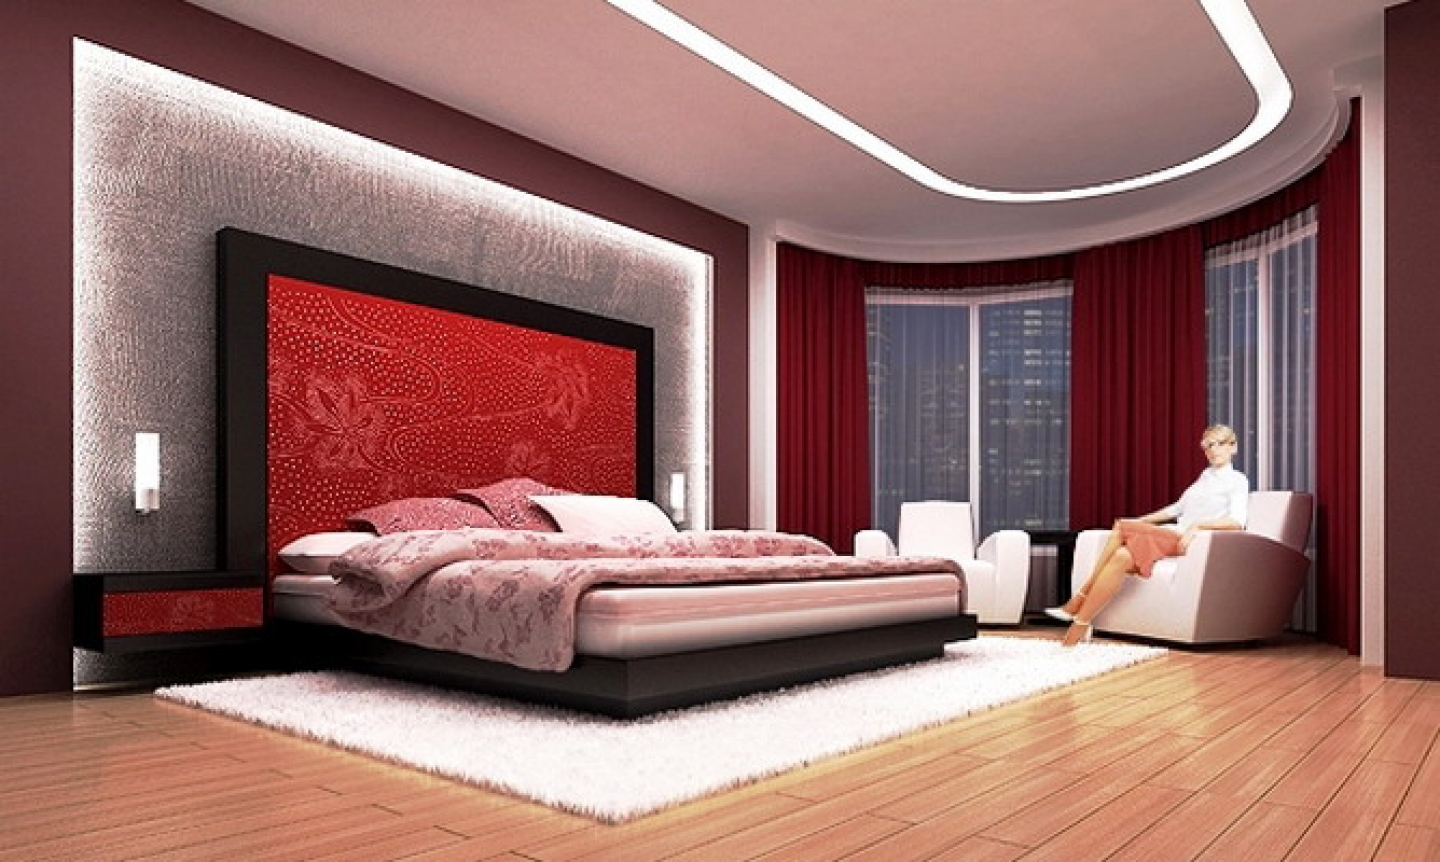 amazing-style-luxury-modern-master-bedrooms-11-modern-master-bedroom-designs-pictures-designs-for-master-bedroom.